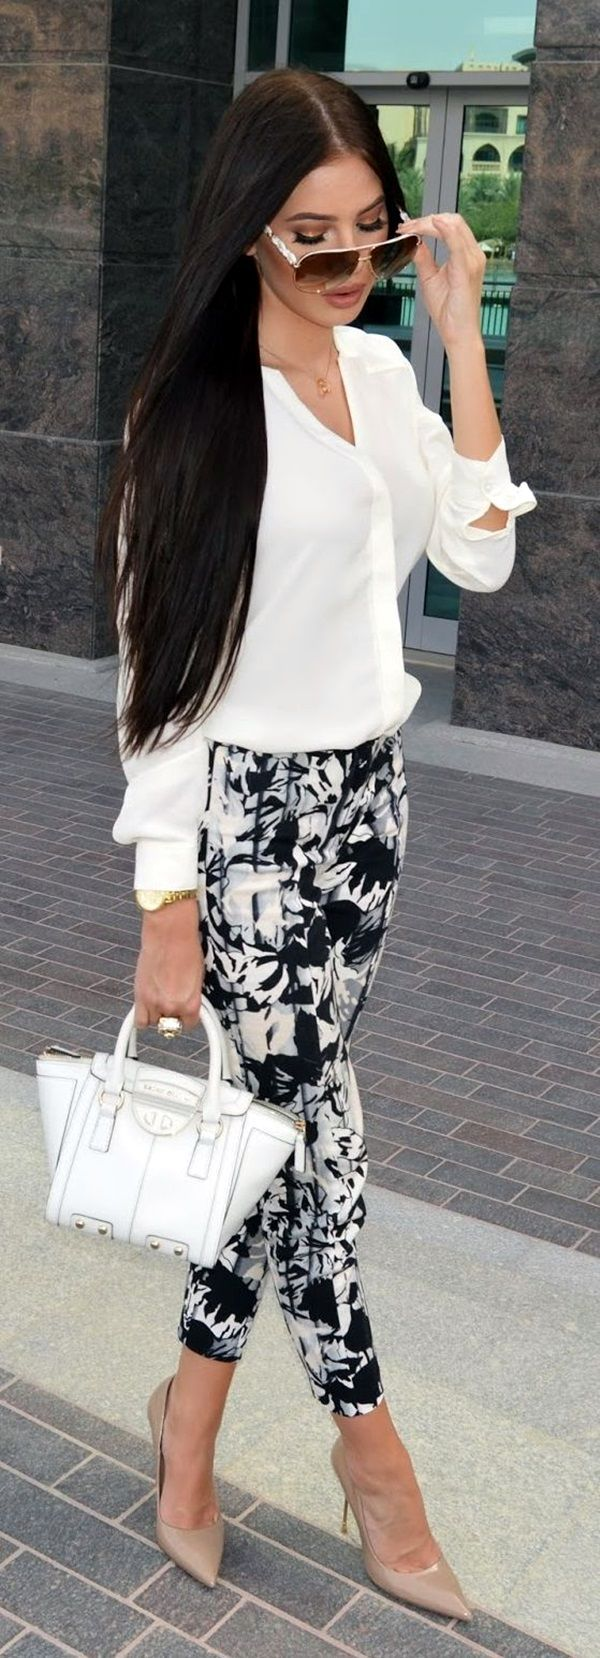 best ofice style images by susan chira on pinterest feminine